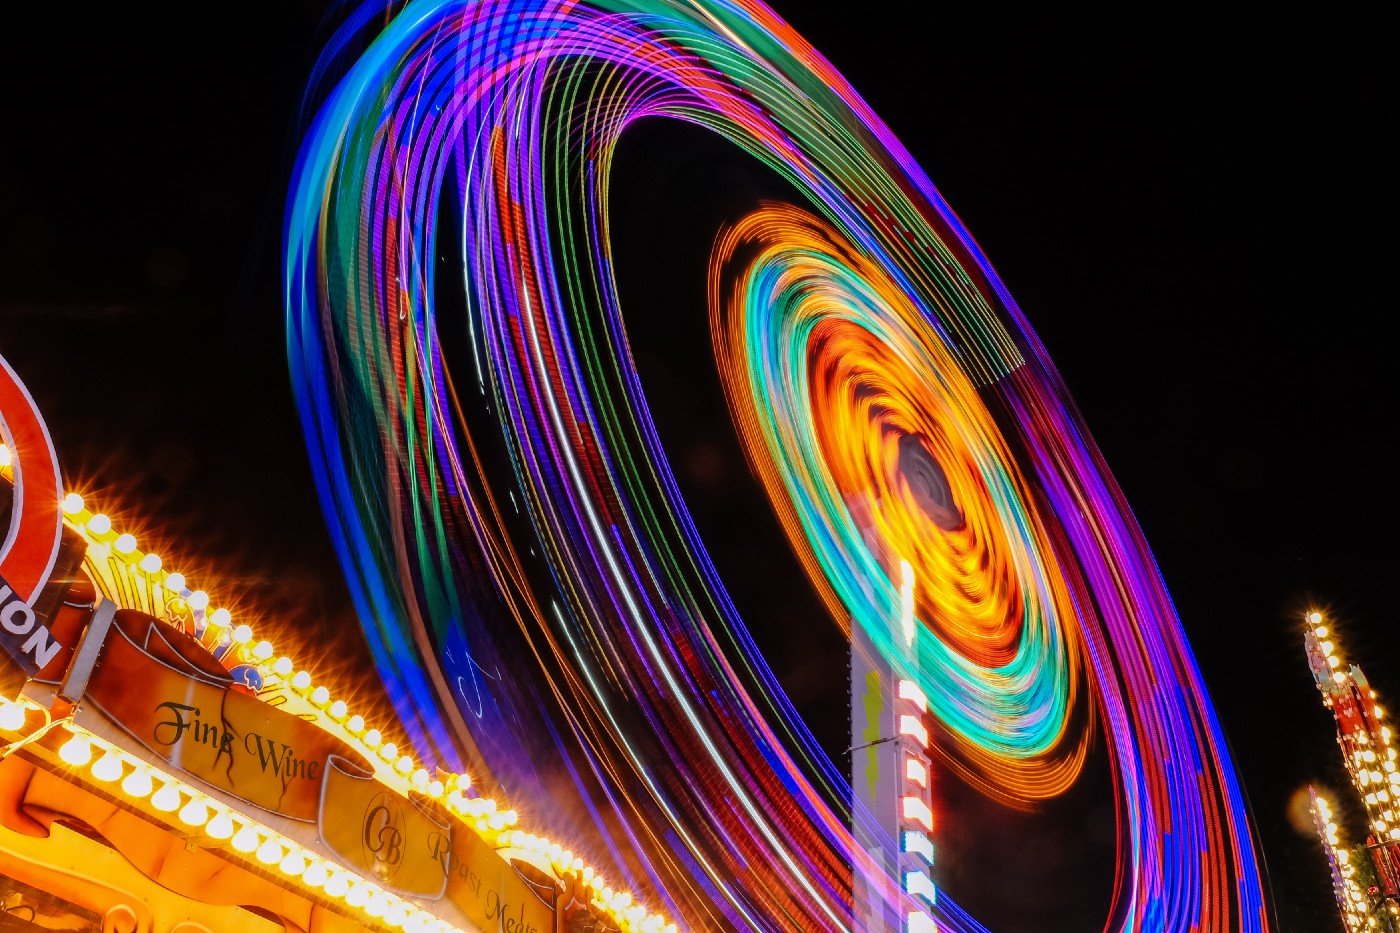 spinning wheel of bright neon lights set above a neon sign